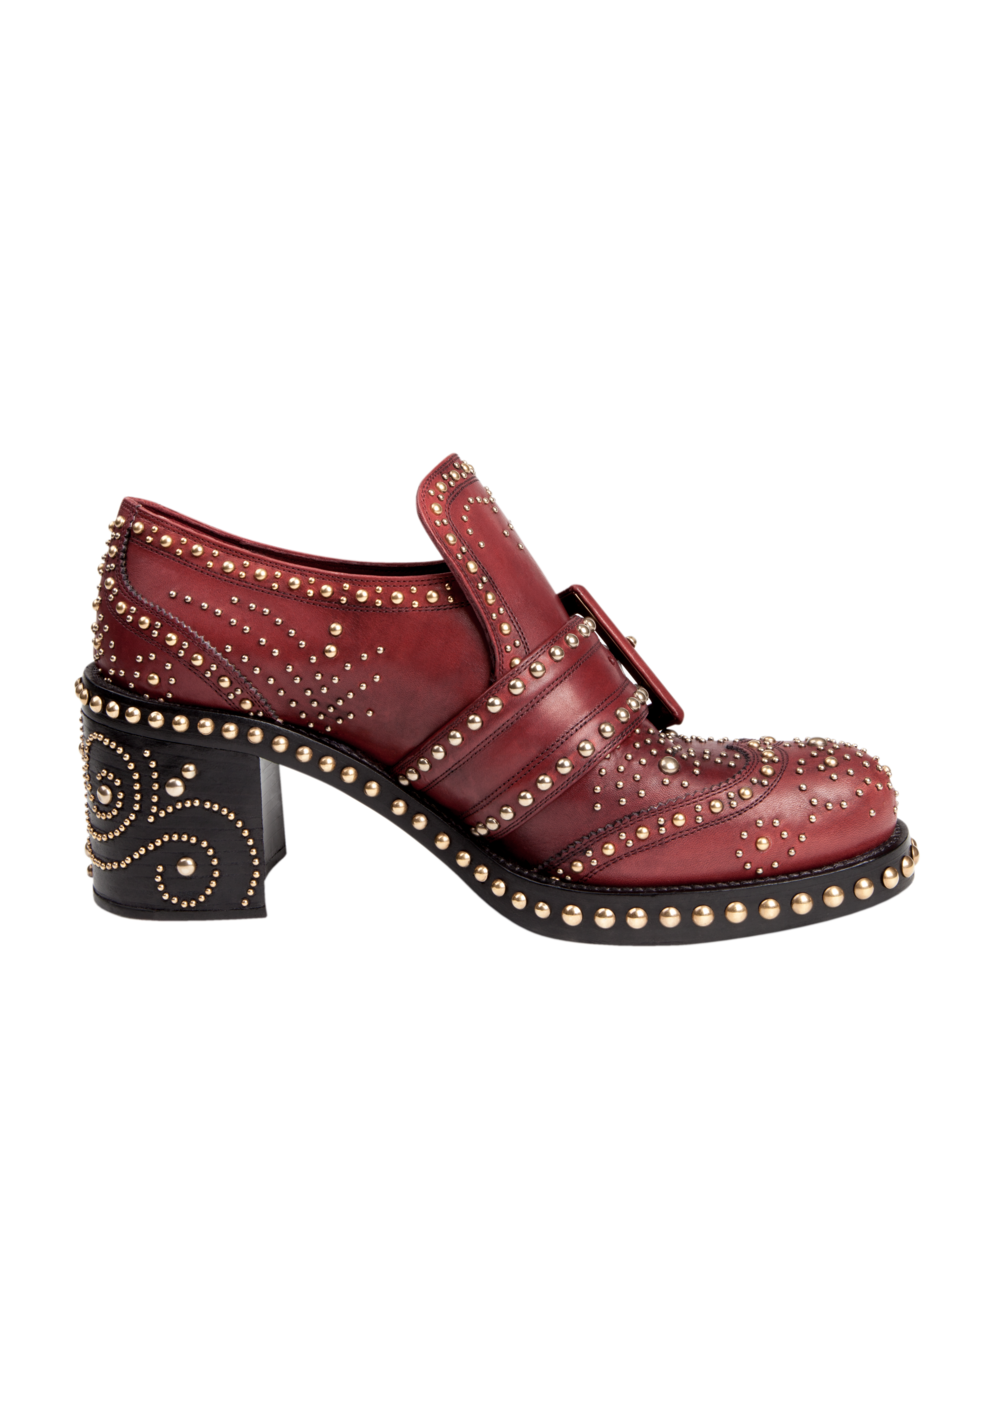 miumiu-shoes-redstud-17.png